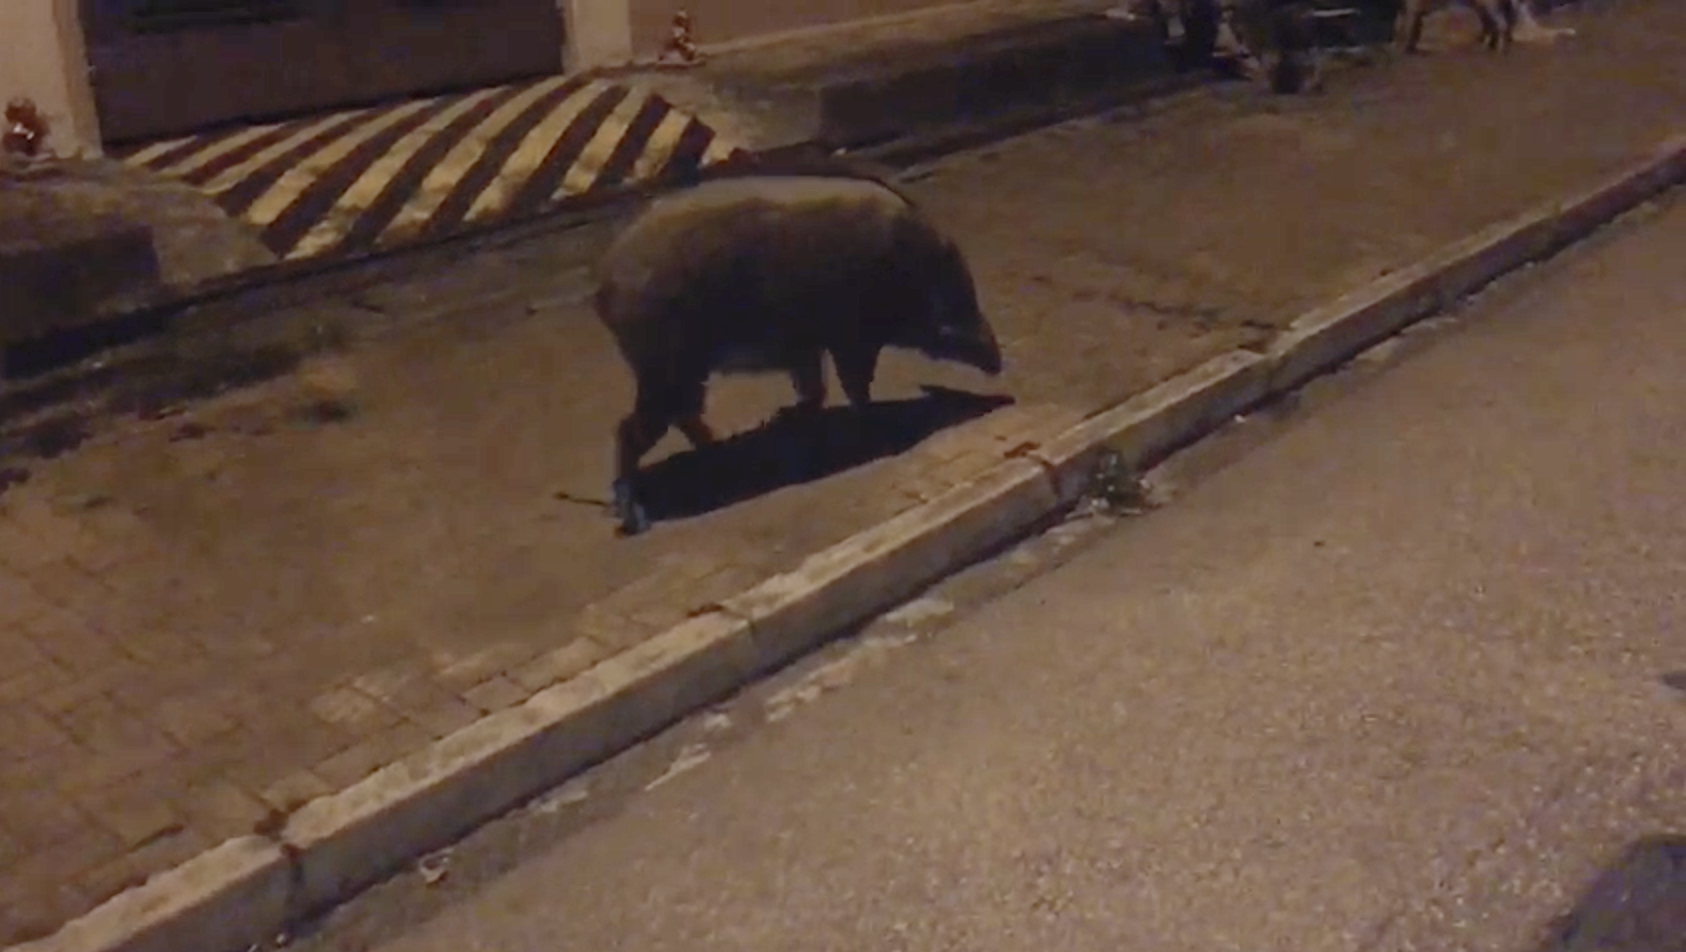 Hong Kong Bay Area, a wild pig searches for food.(Image Credit: Mona Song / Vision Times)